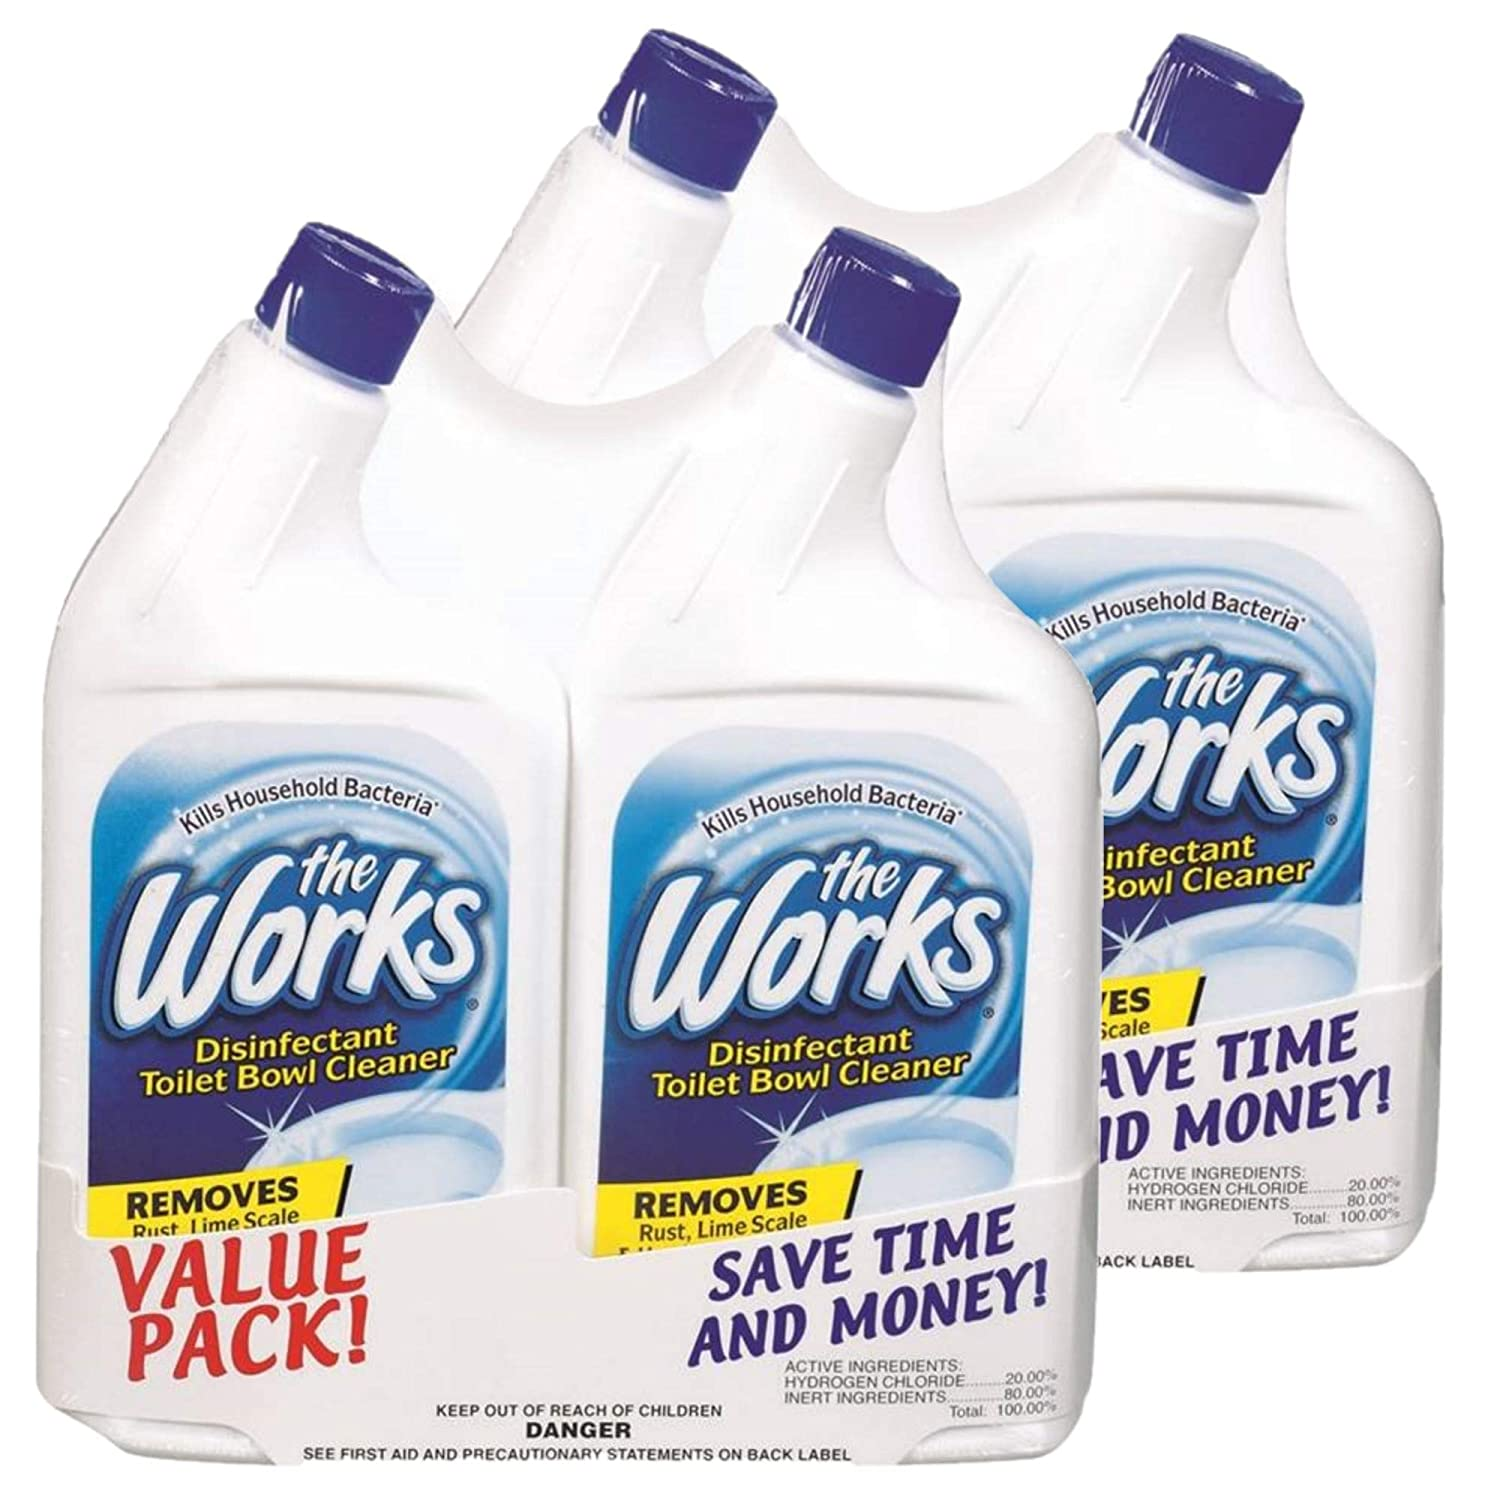 Home Care Lab The Works 32オンス トイレボウルクリーナー 2個パック 1-Pack 33310WK-4PK B07HJK4GZZ  1-Pack